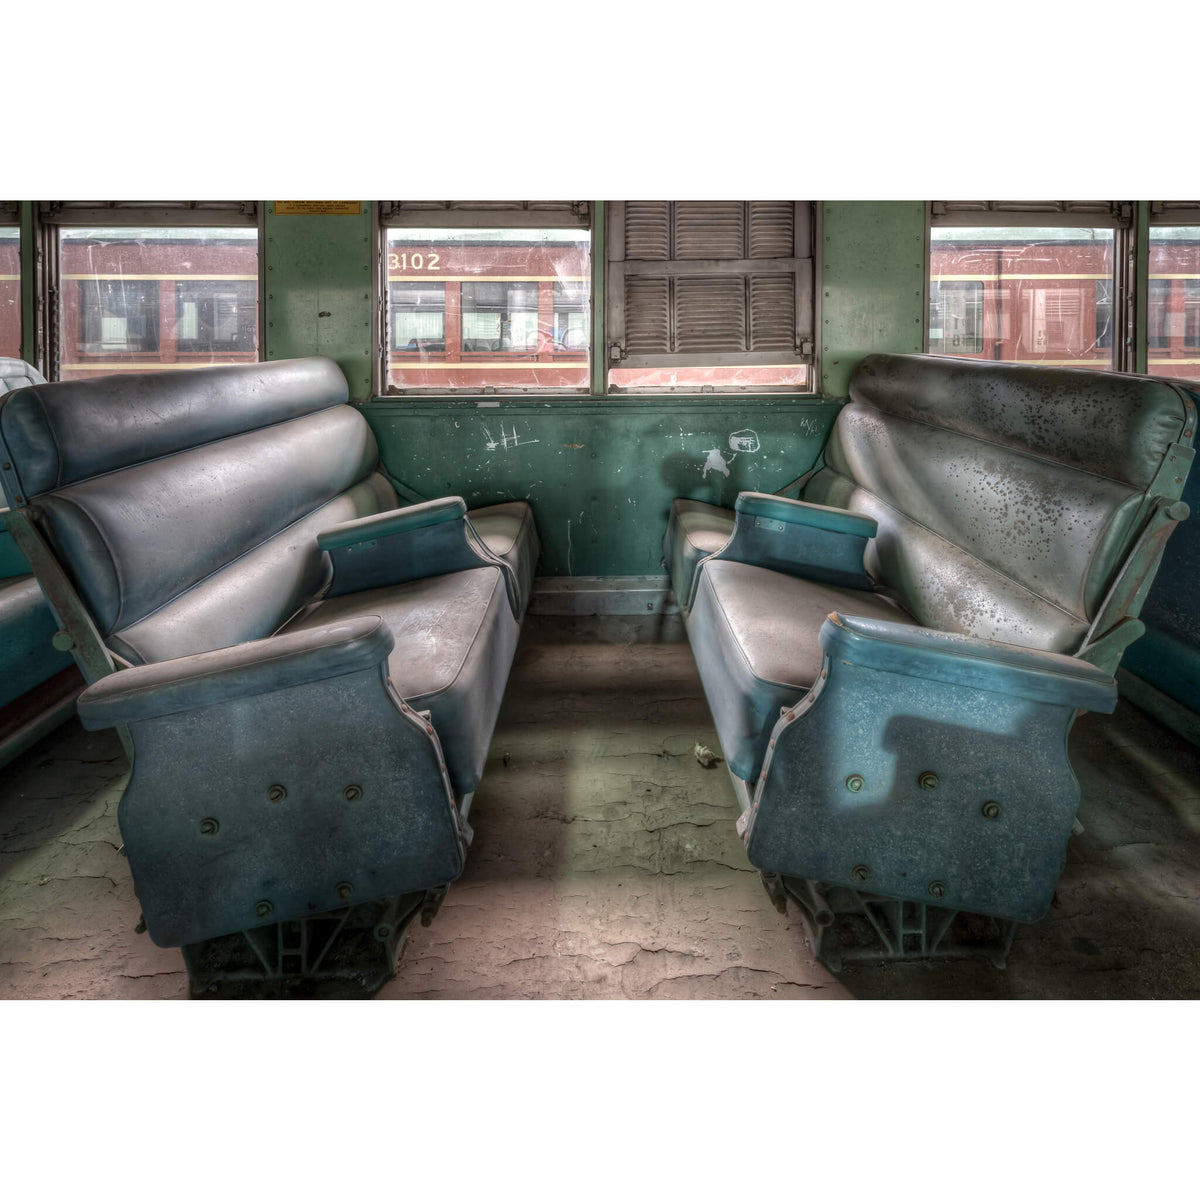 Interurban Passenger Seating | Eveleigh Paint Shop Fine Art Print - Lost Collective Shop